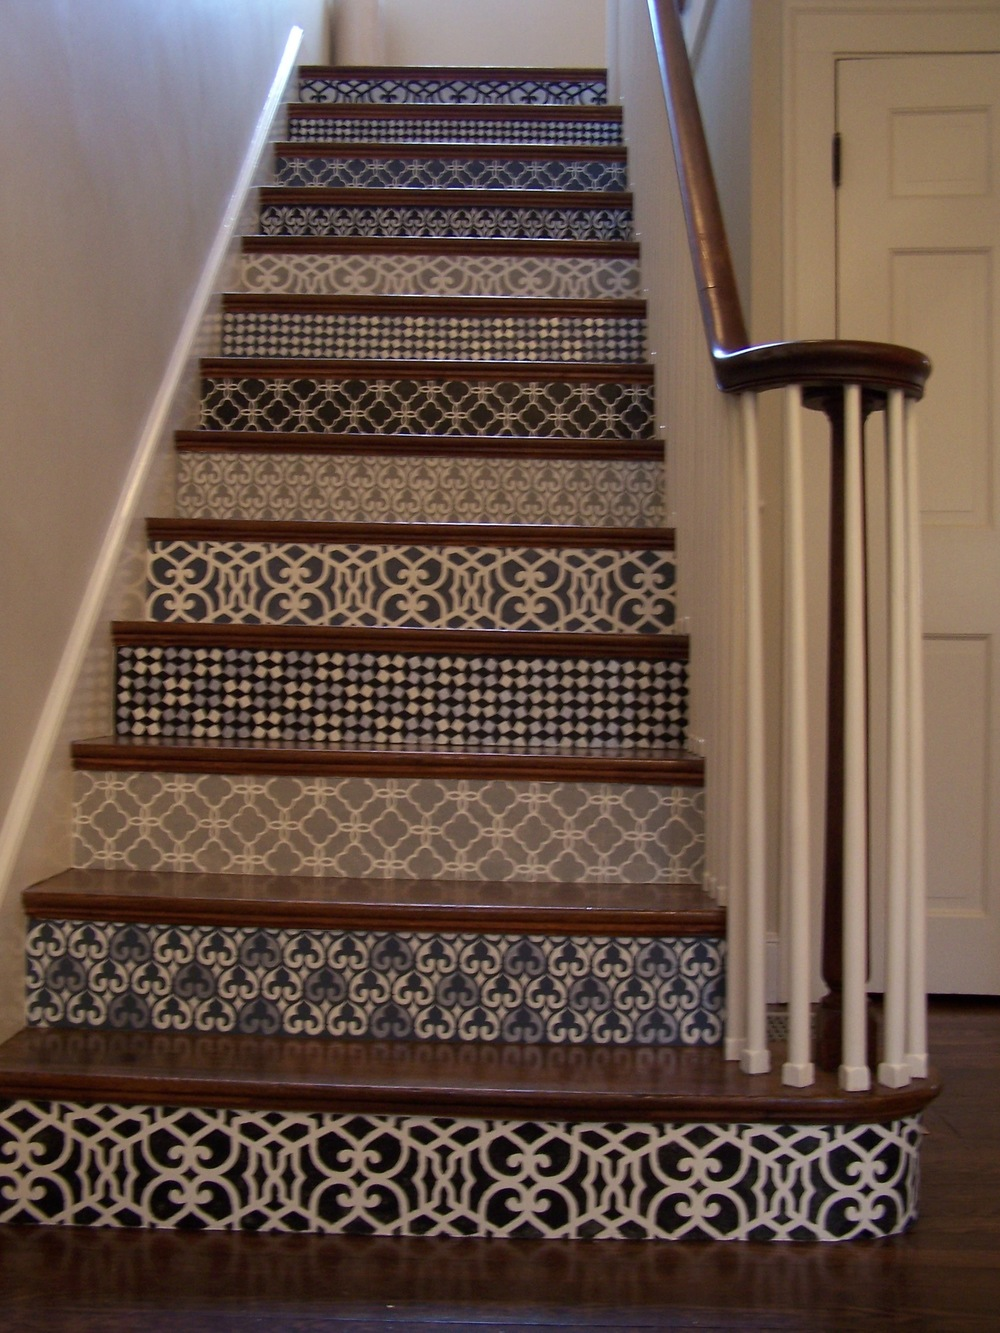 Stenciled staircase